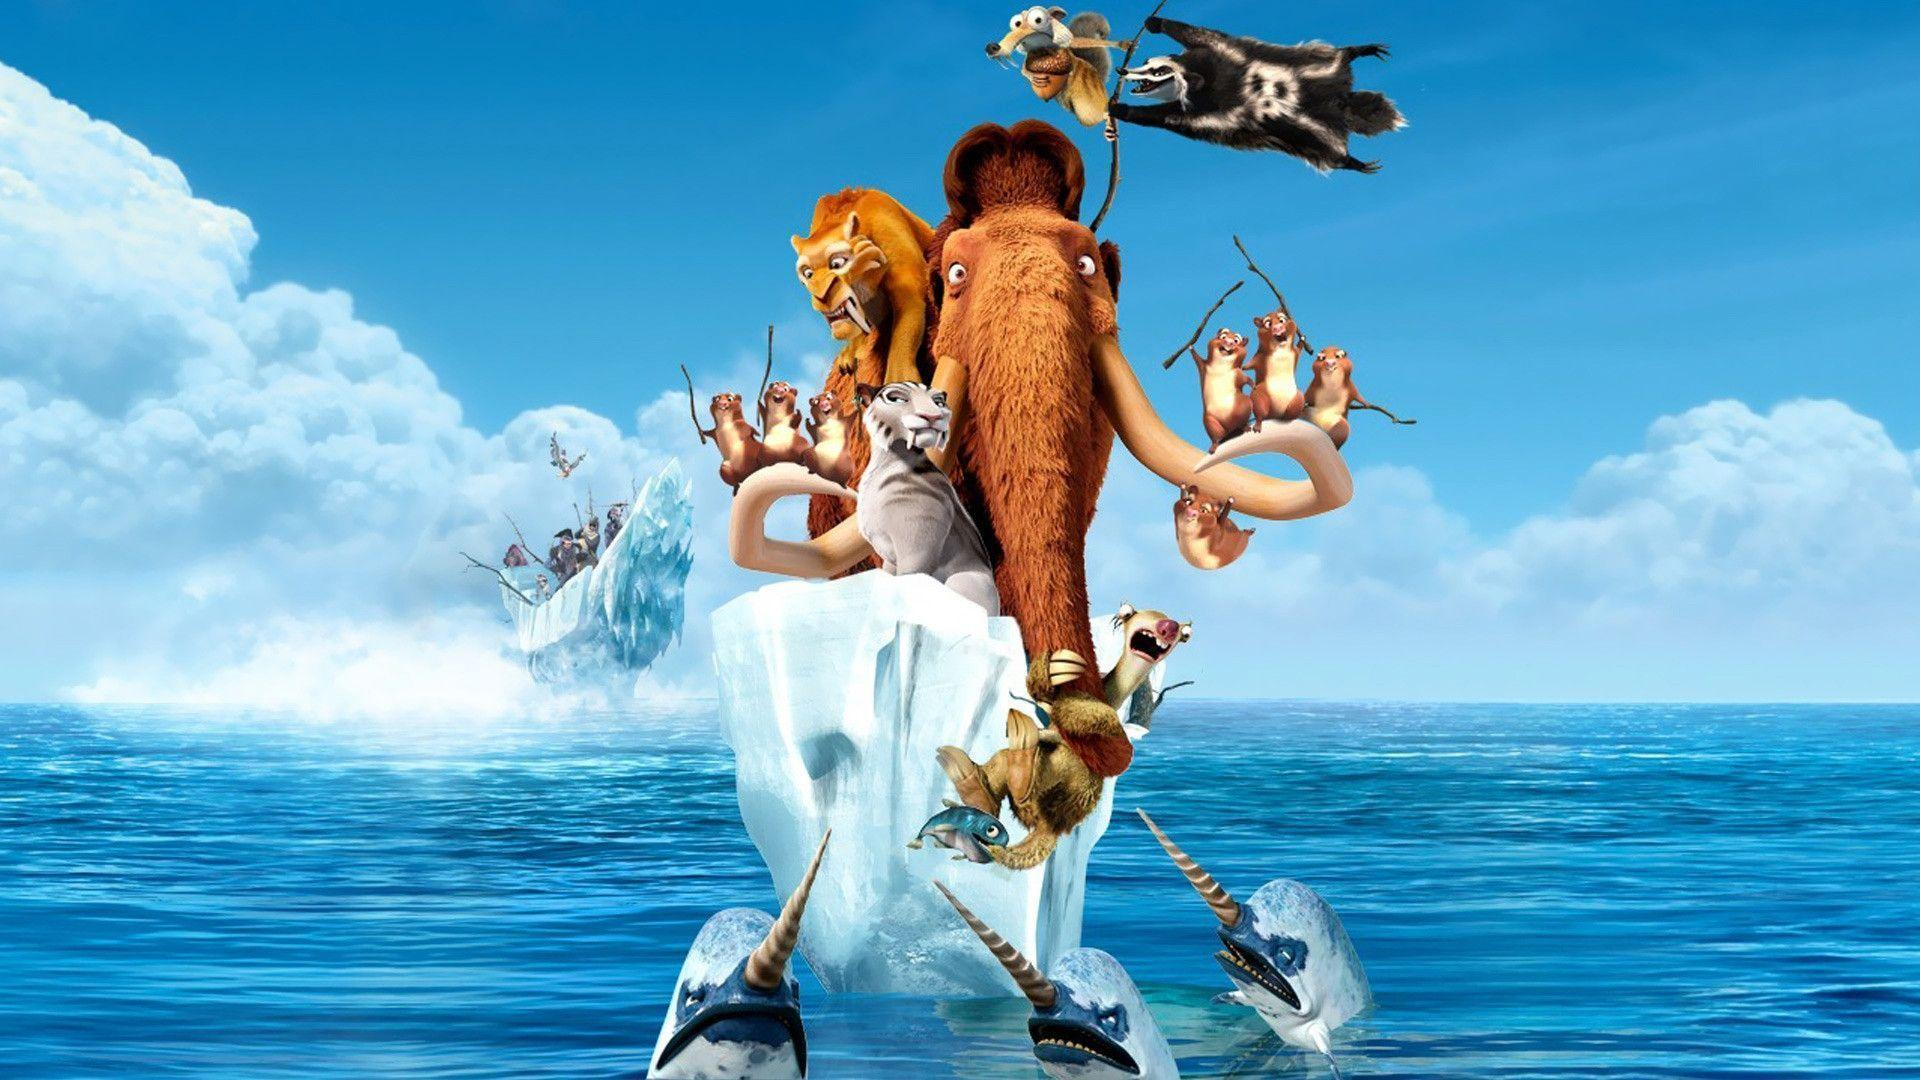 ice age 4 continentalDrift MOVIE 1080p HD Wallpapers , Free